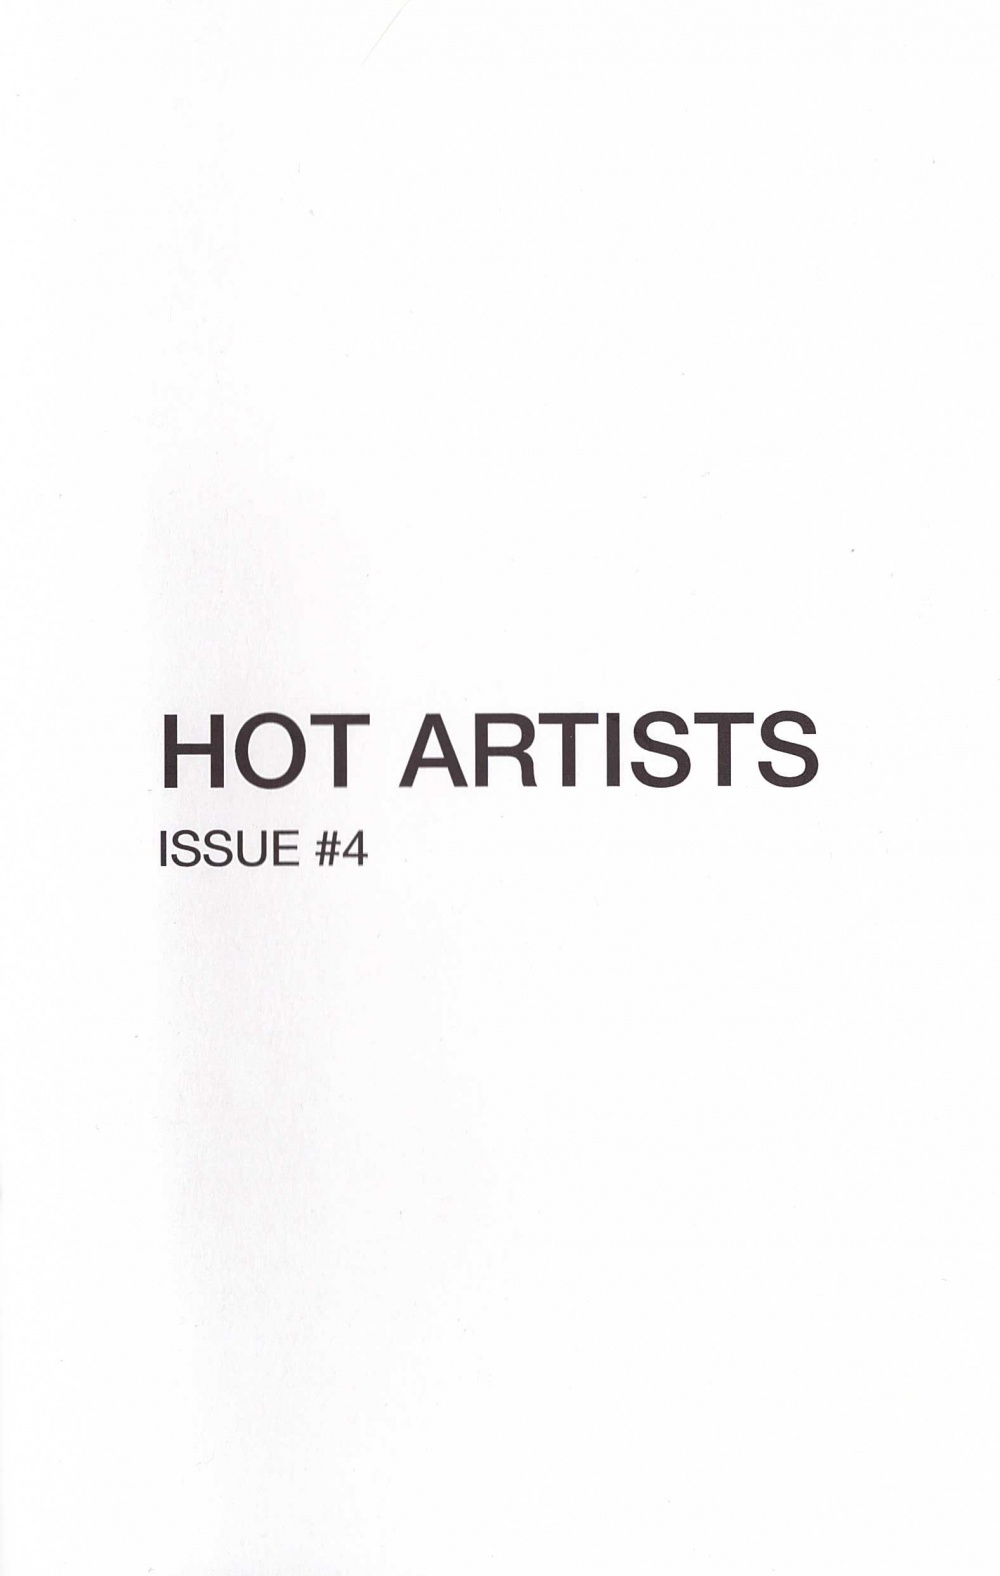 Hot Artists Issue #4